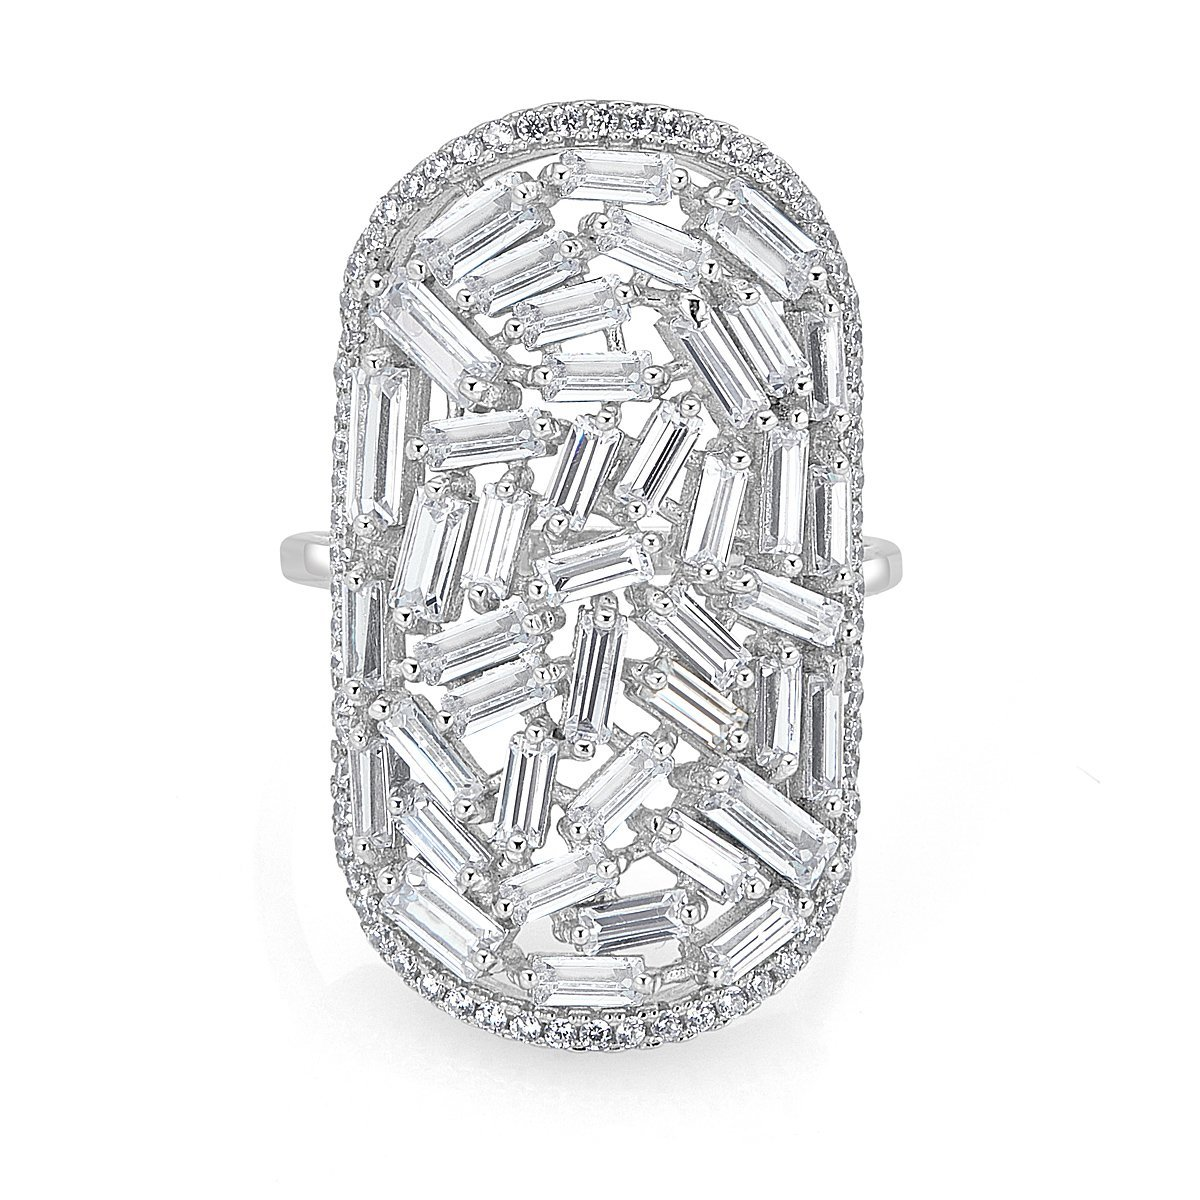 Platinum Plated Sterling Silver Baguette Cubic Zirconia Ring by Caratina